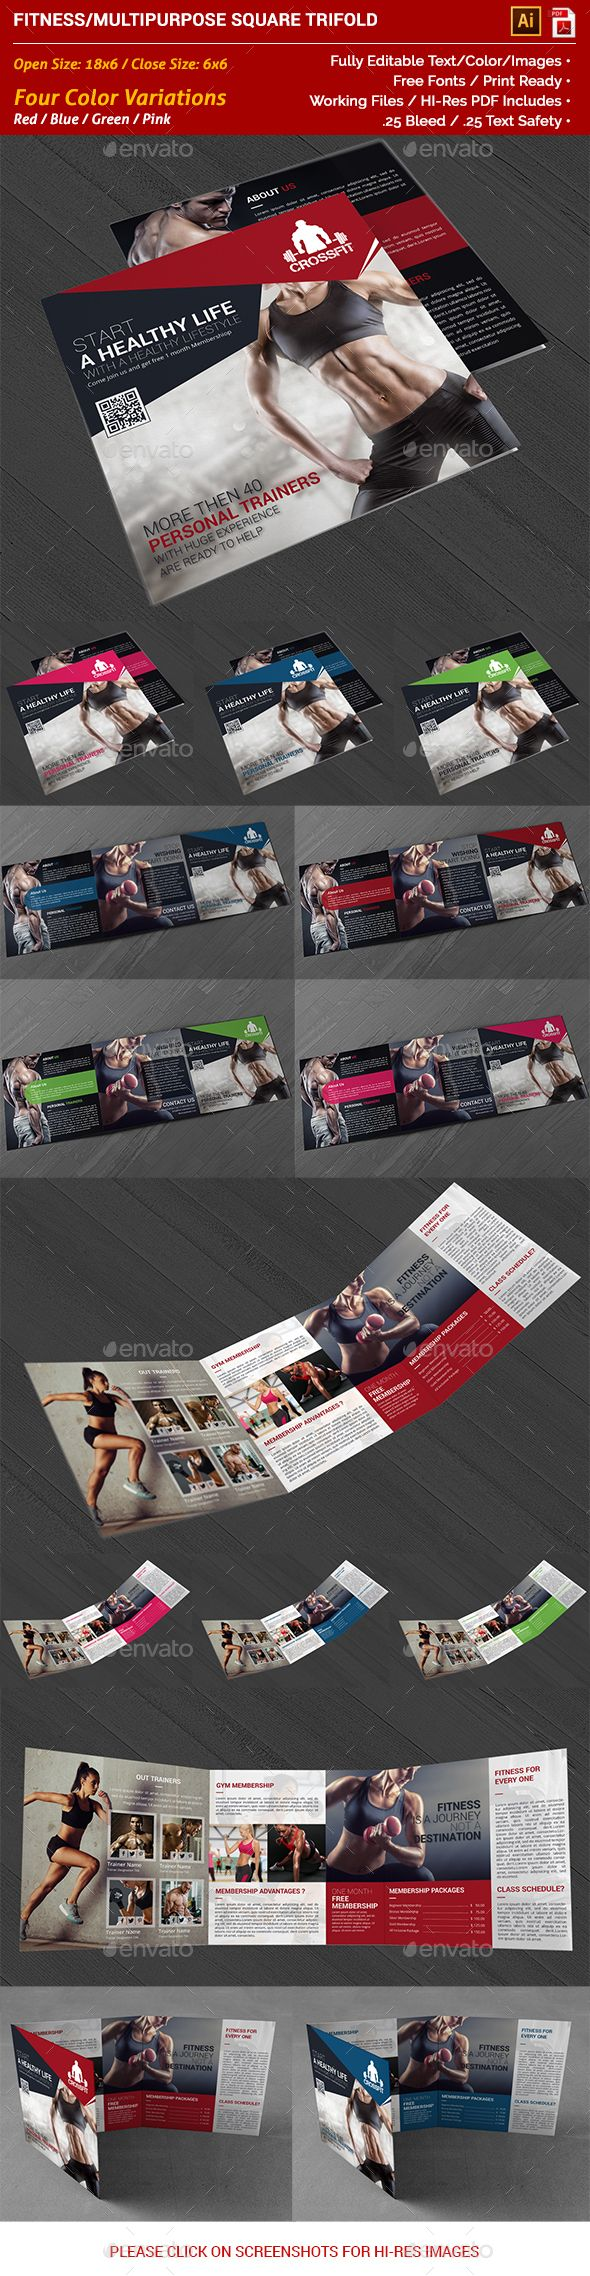 Gym And Fitness Square Trifold Brochure  Brochures Ai